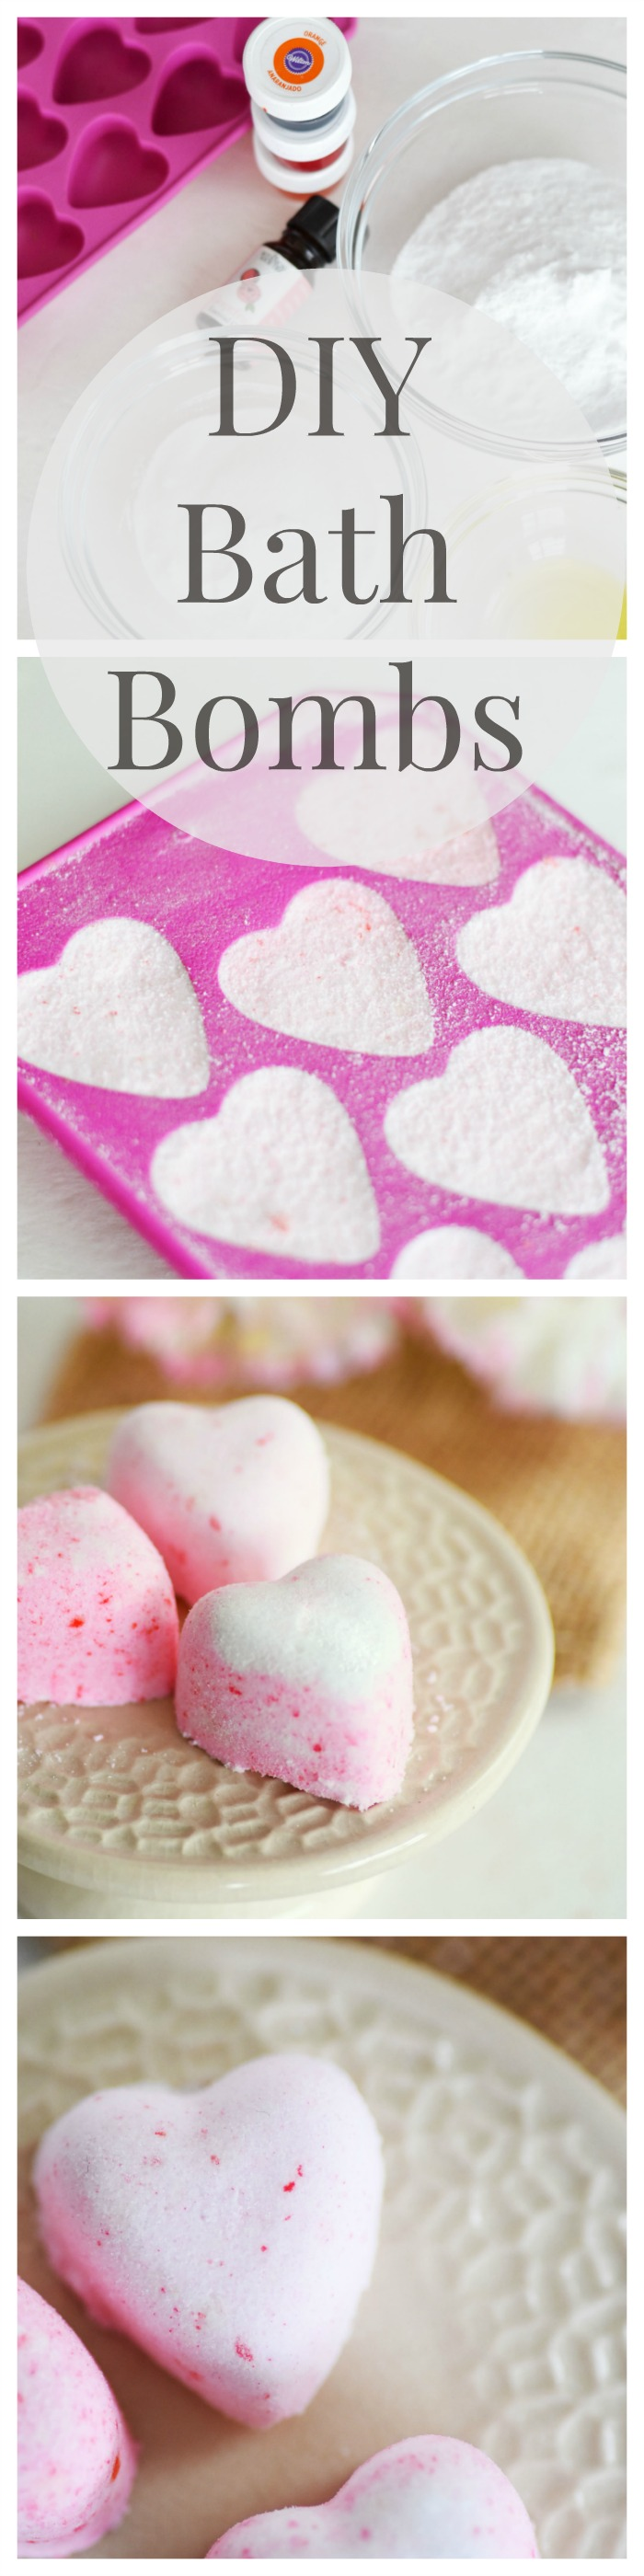 DIY bath bomb fizzies made with citric acid. These bath bombs can be custom tailored to any scents you enjoy! Great gift idea too!